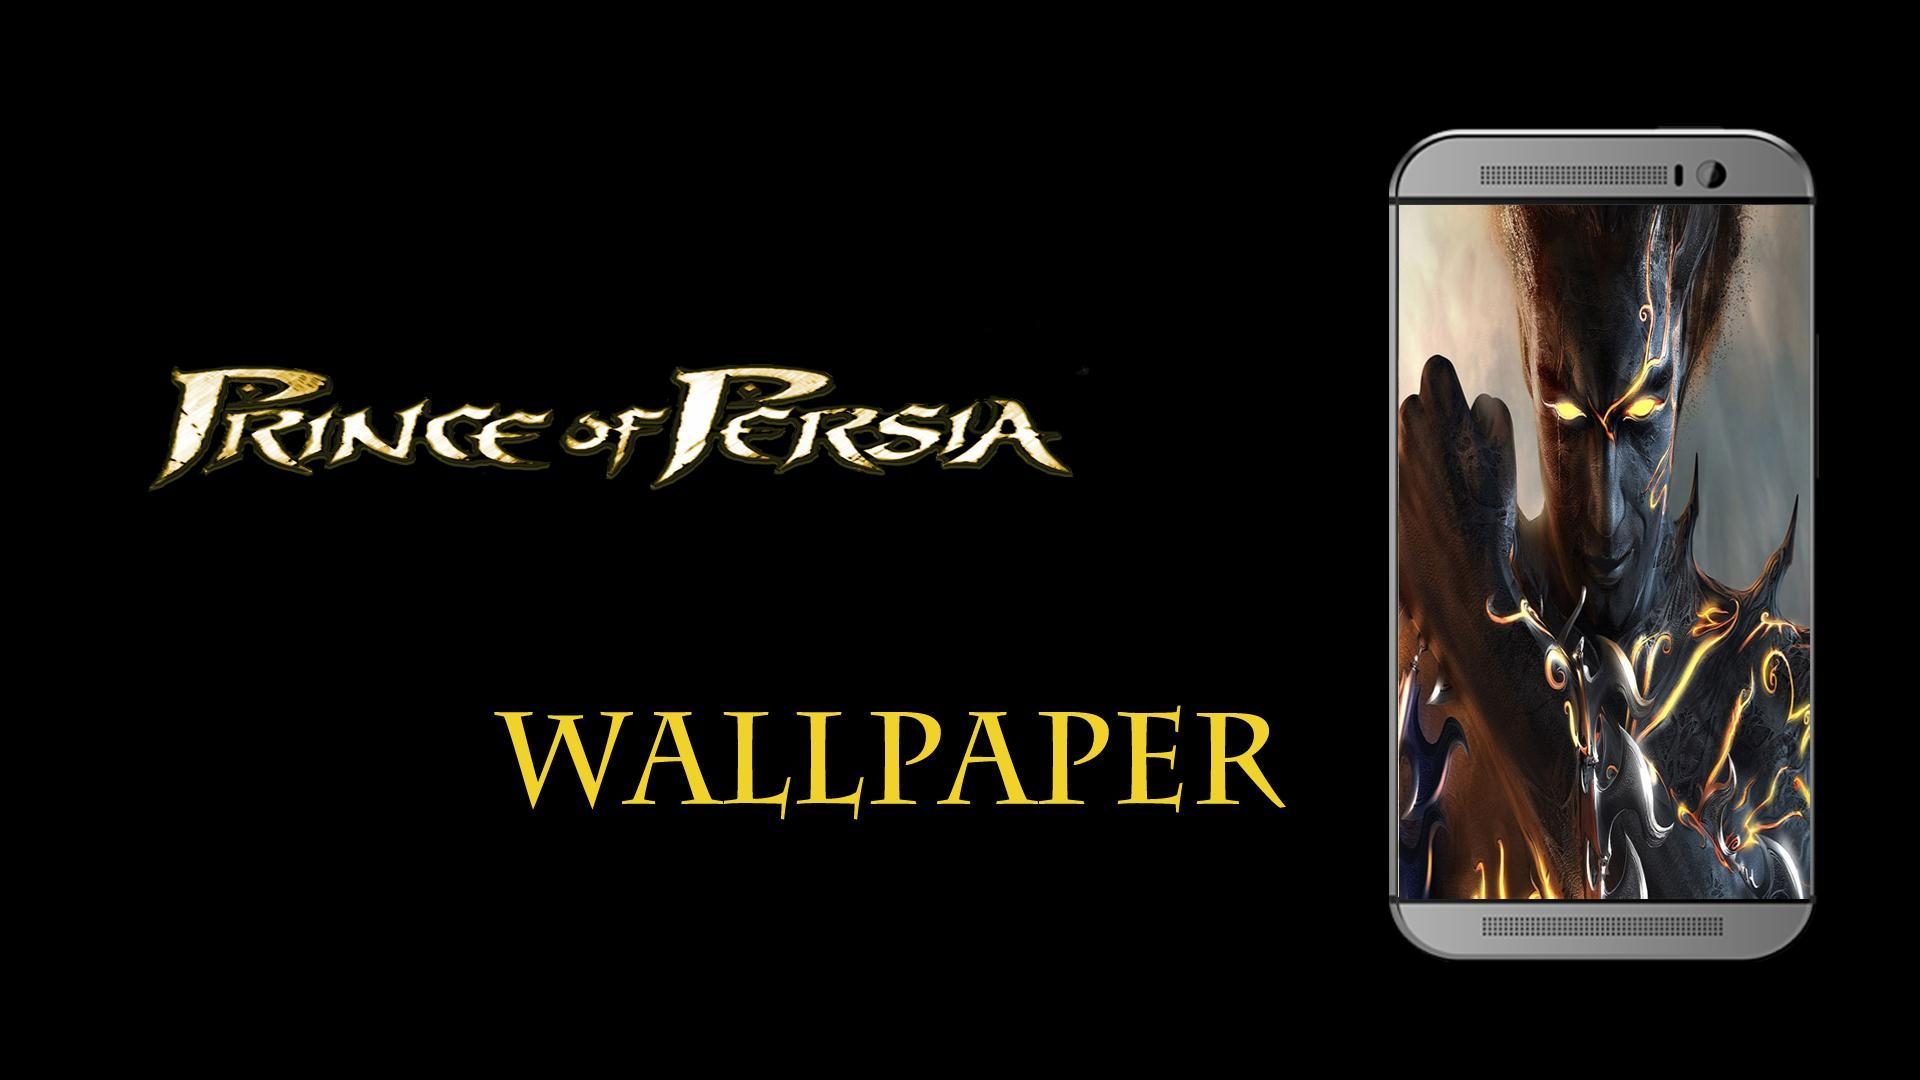 Prince Of Persia Wallpaper Hd For Android Apk Download